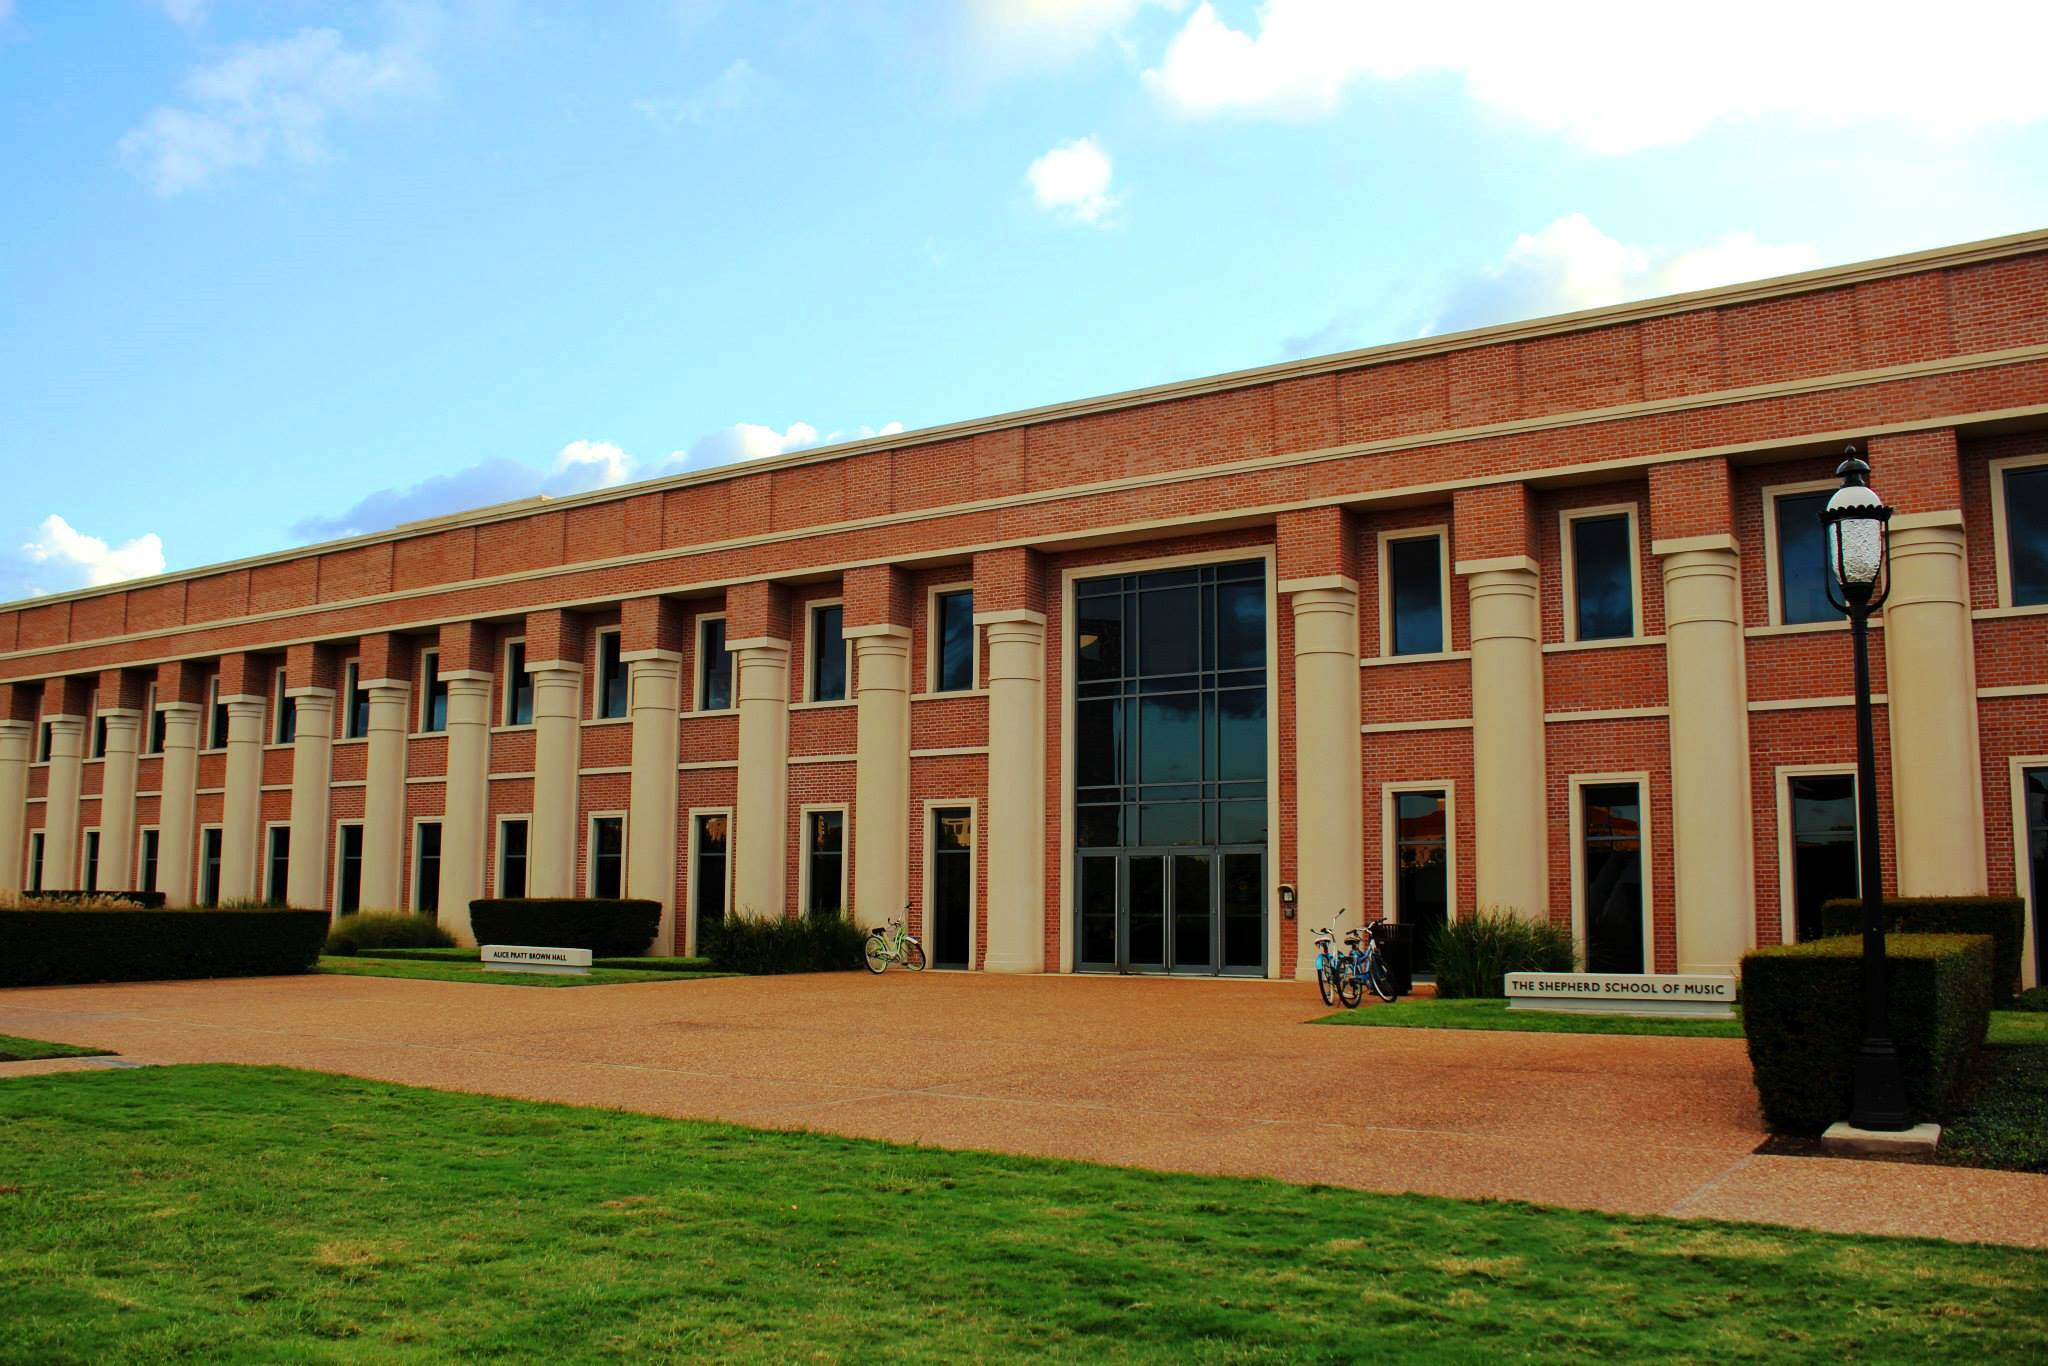 The Shepherd School of Music at Rice University